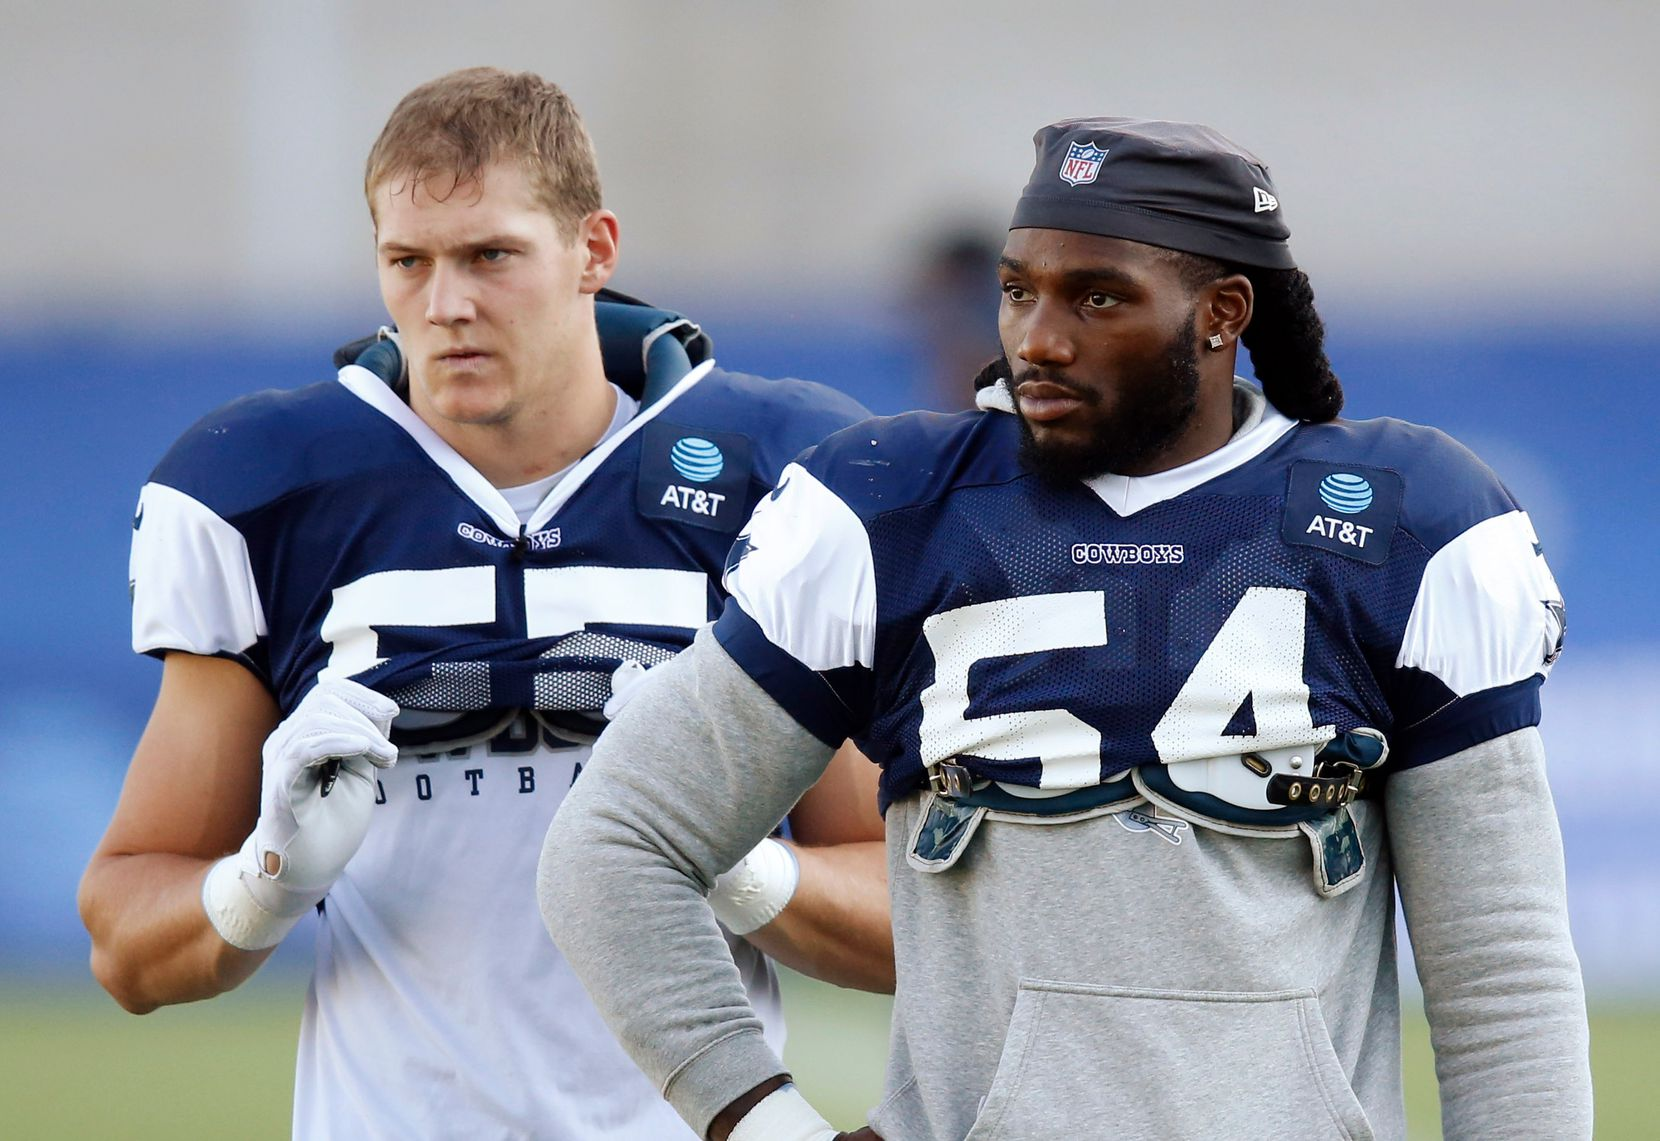 Dallas Cowboys linebacker Jaylon Smith (54) and Dallas Cowboys linebacker Leighton Vander Esch (55) during training camp at the Dallas Cowboys headquarters at The Star in Frisco, Texas on Thursday, August 20, 2020. (Vernon Bryant/The Dallas Morning News)